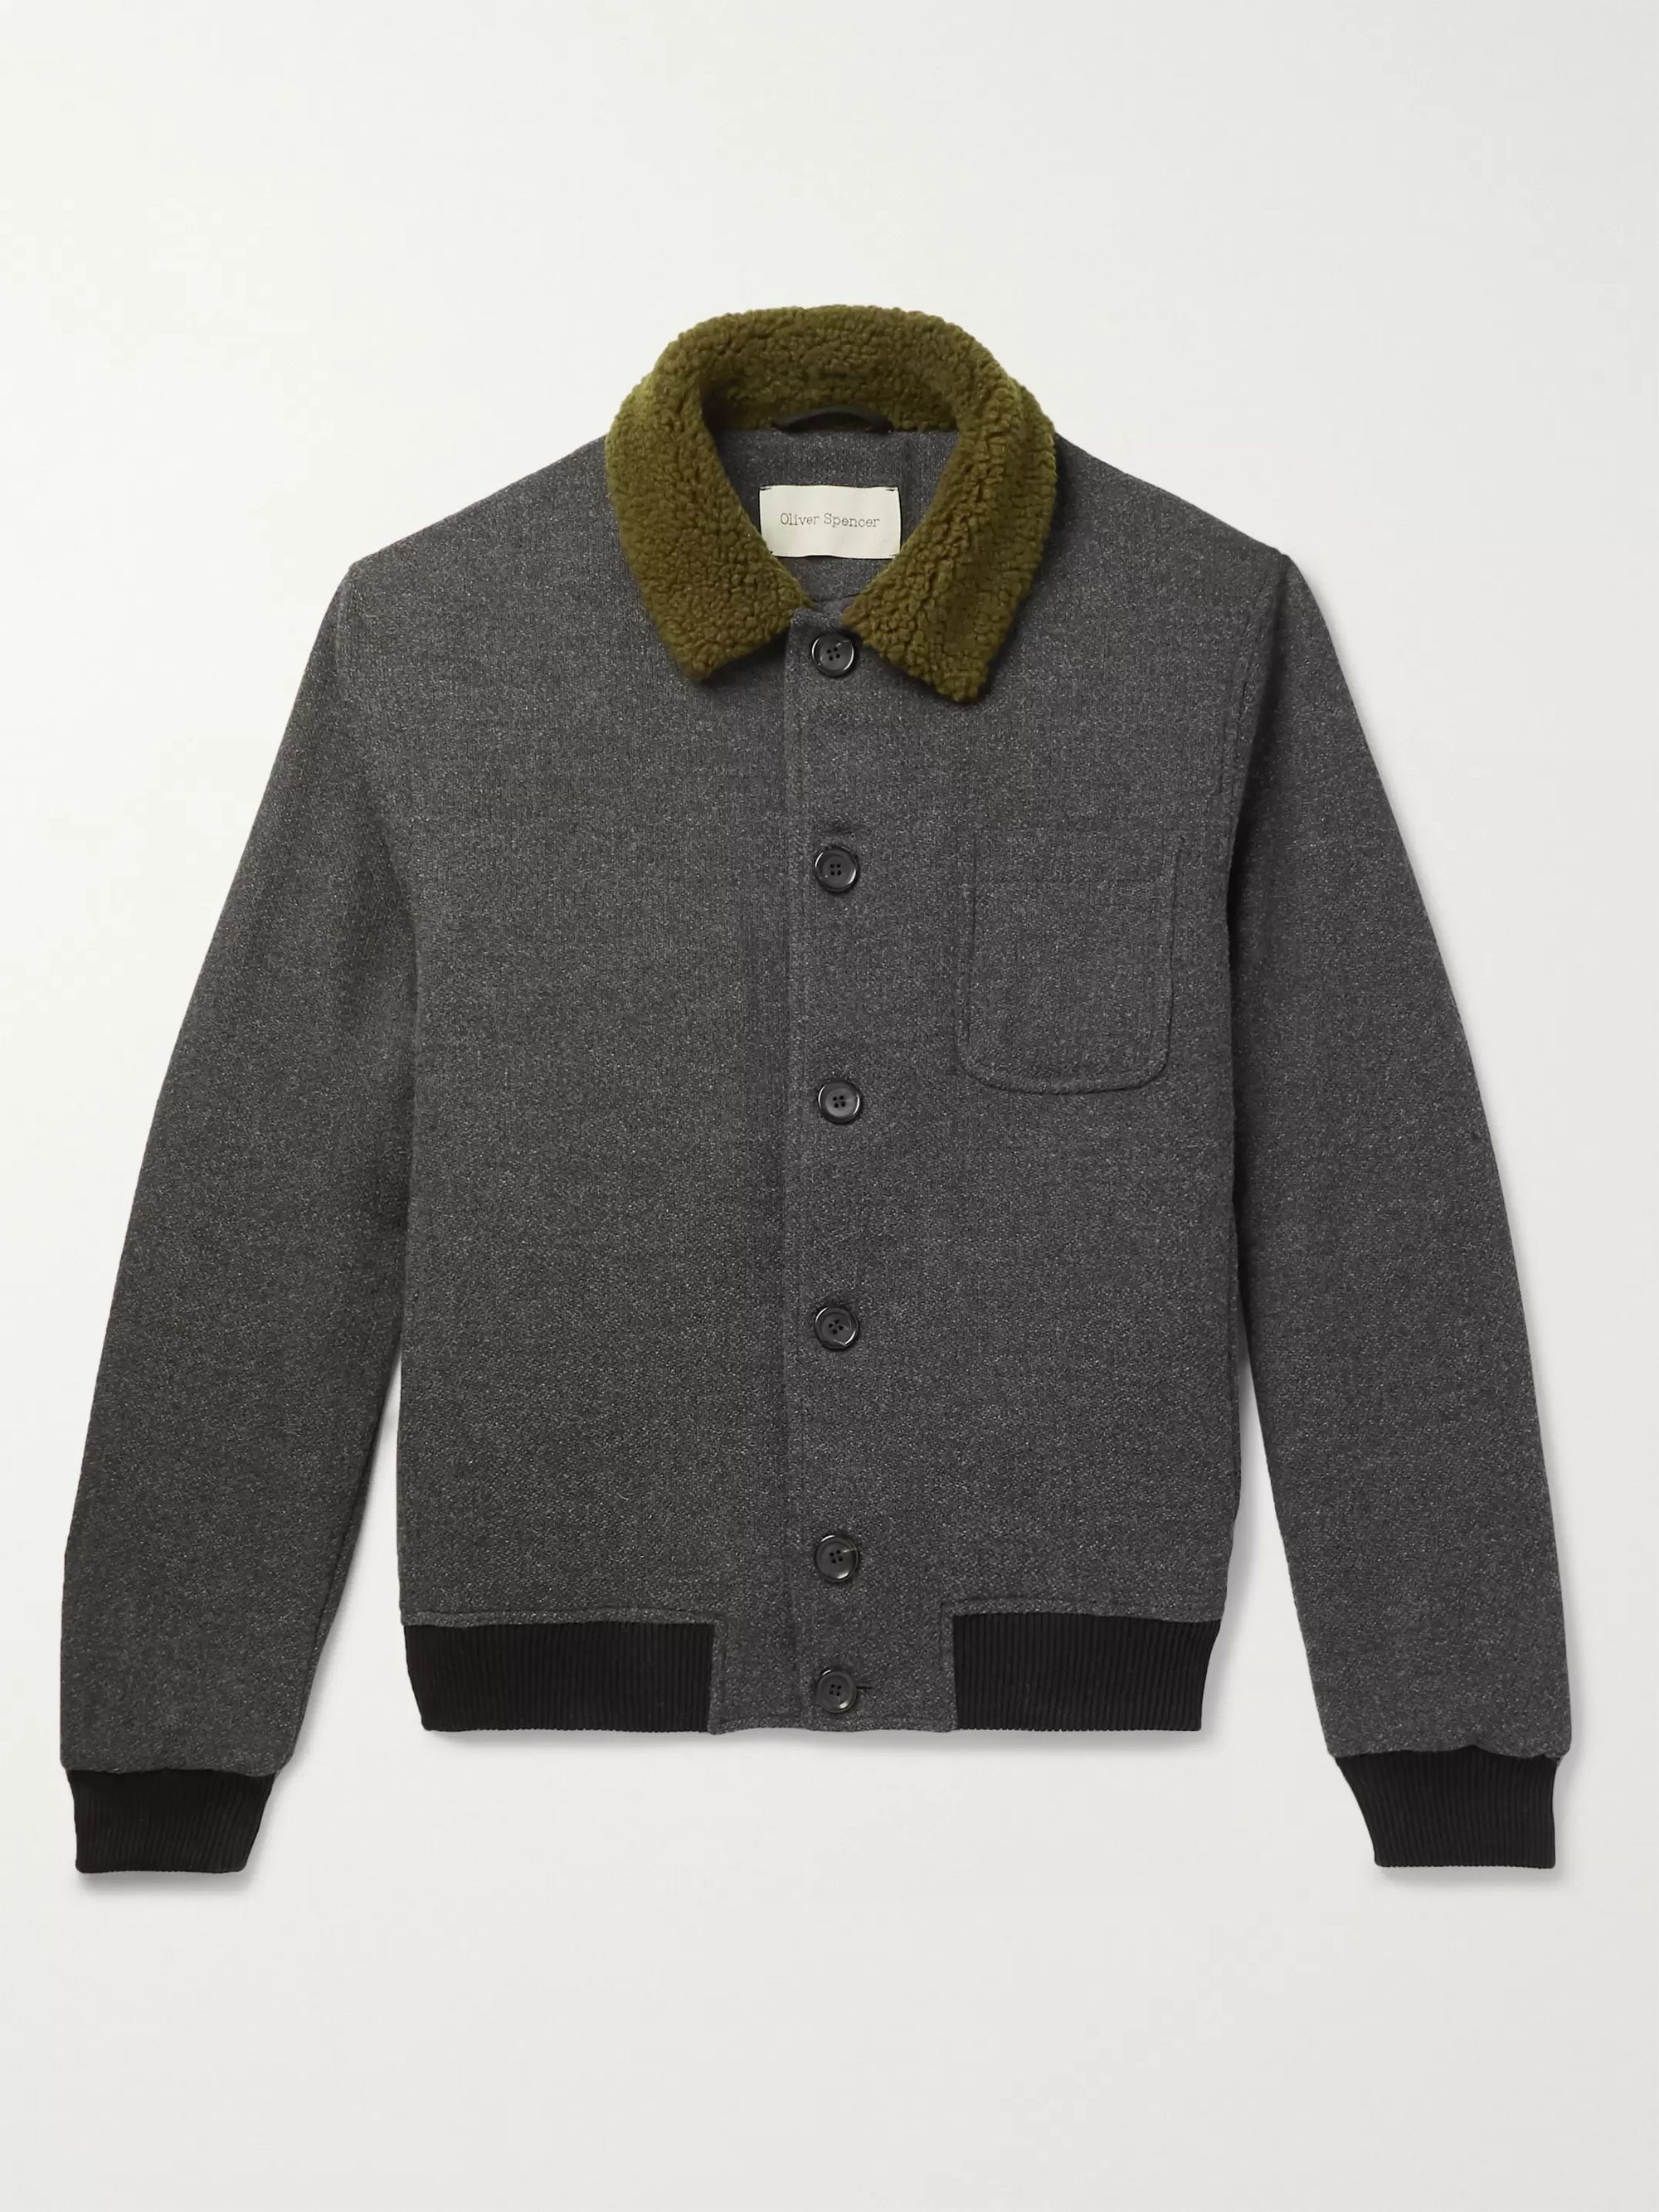 Oliver Spencer Foxham Faux Shearling-Trimmed Mélange Wool and Cotton-Blend Bomber Jacket